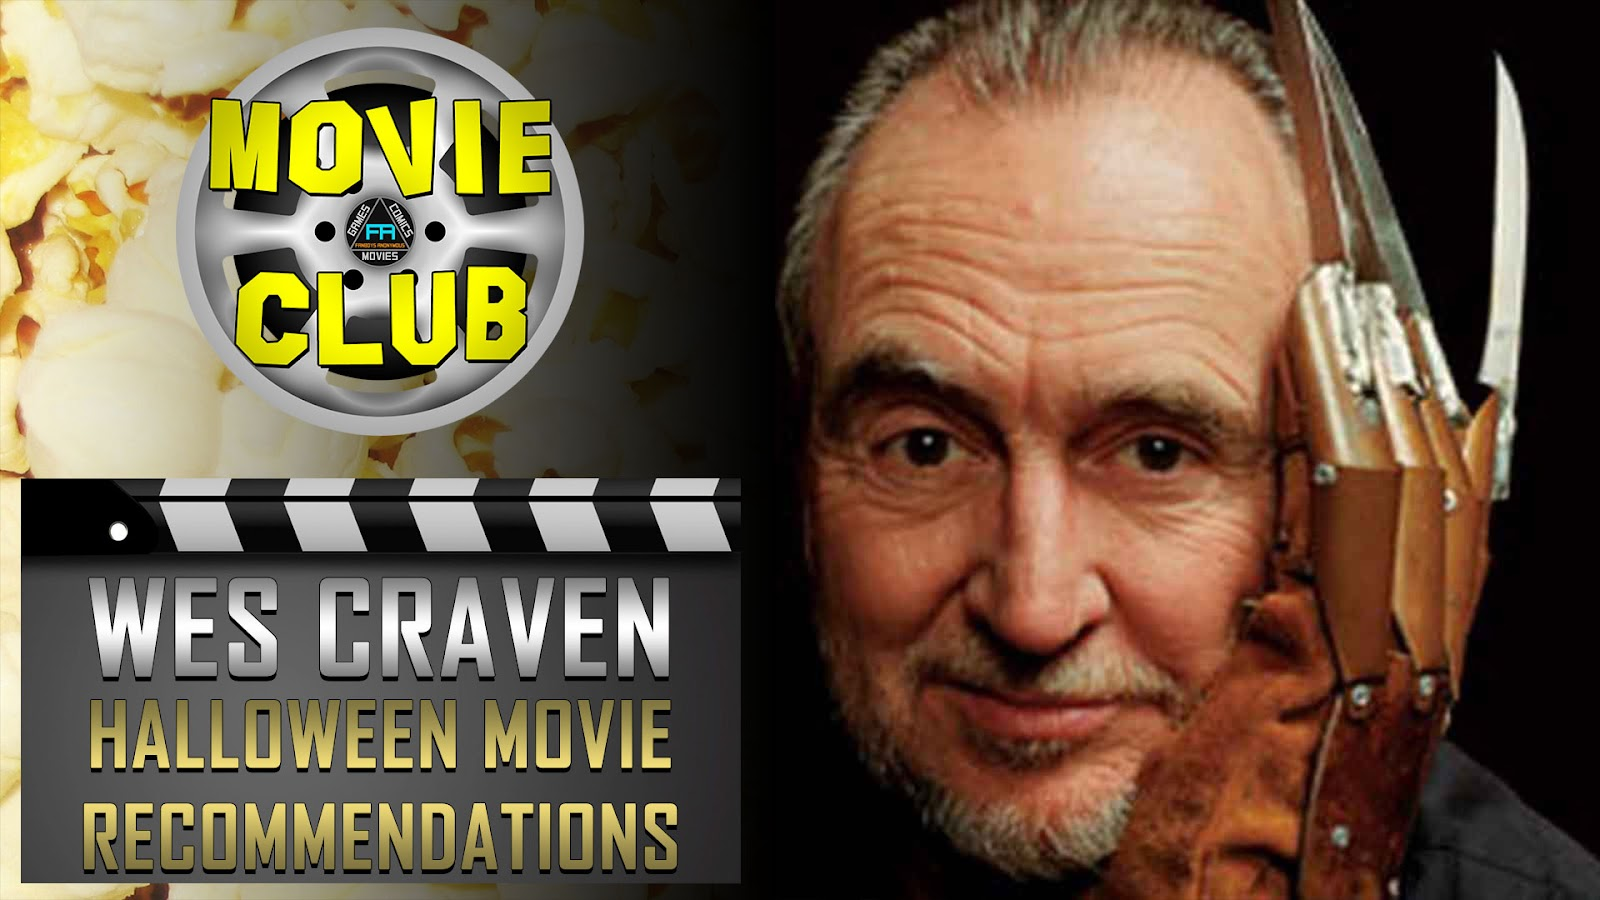 Wes Craven Halloween movie recommendations